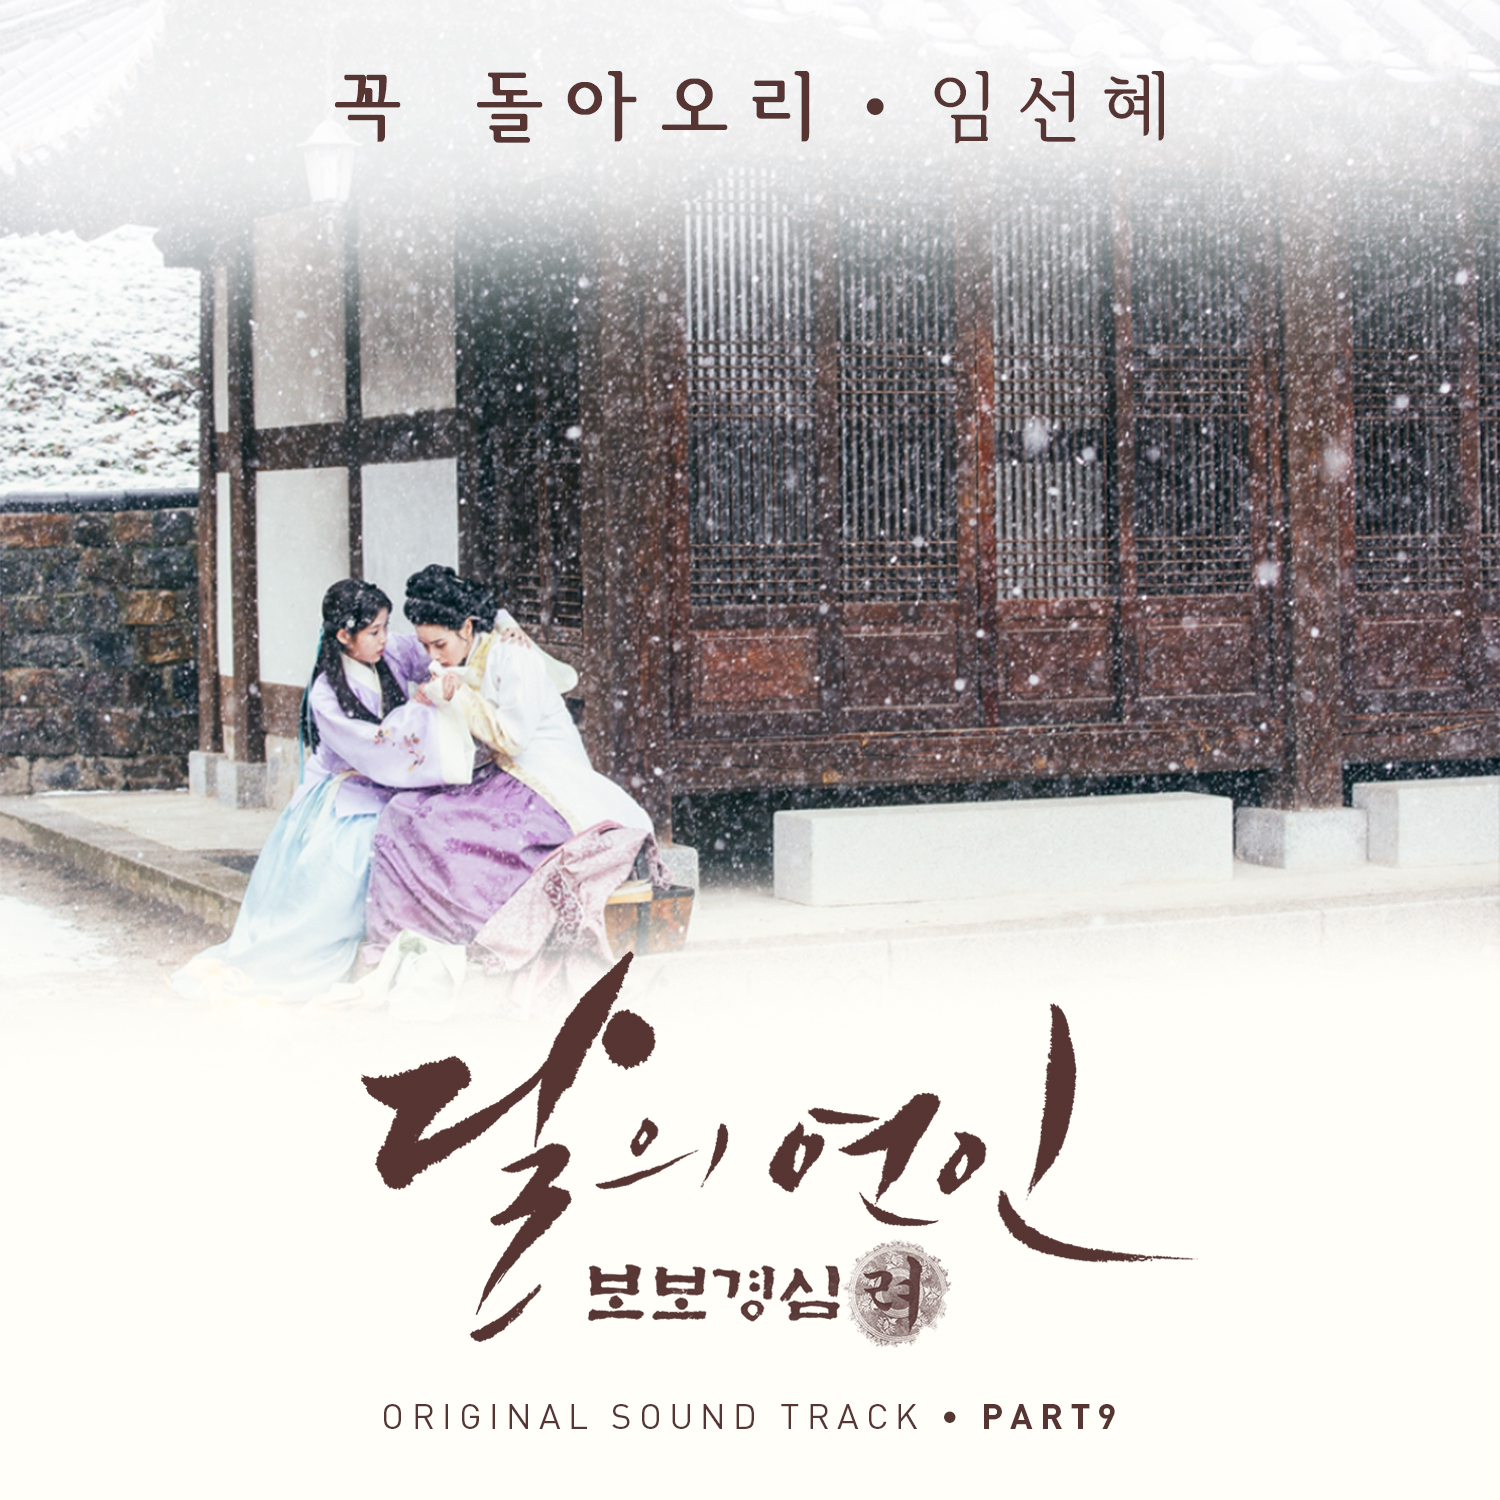 [Single] Sun Hea Im – Moon Lovers: Scarlet Heart Ryeo OST Part 9 (FLAC + ITUNES PLUS AAC M4A)